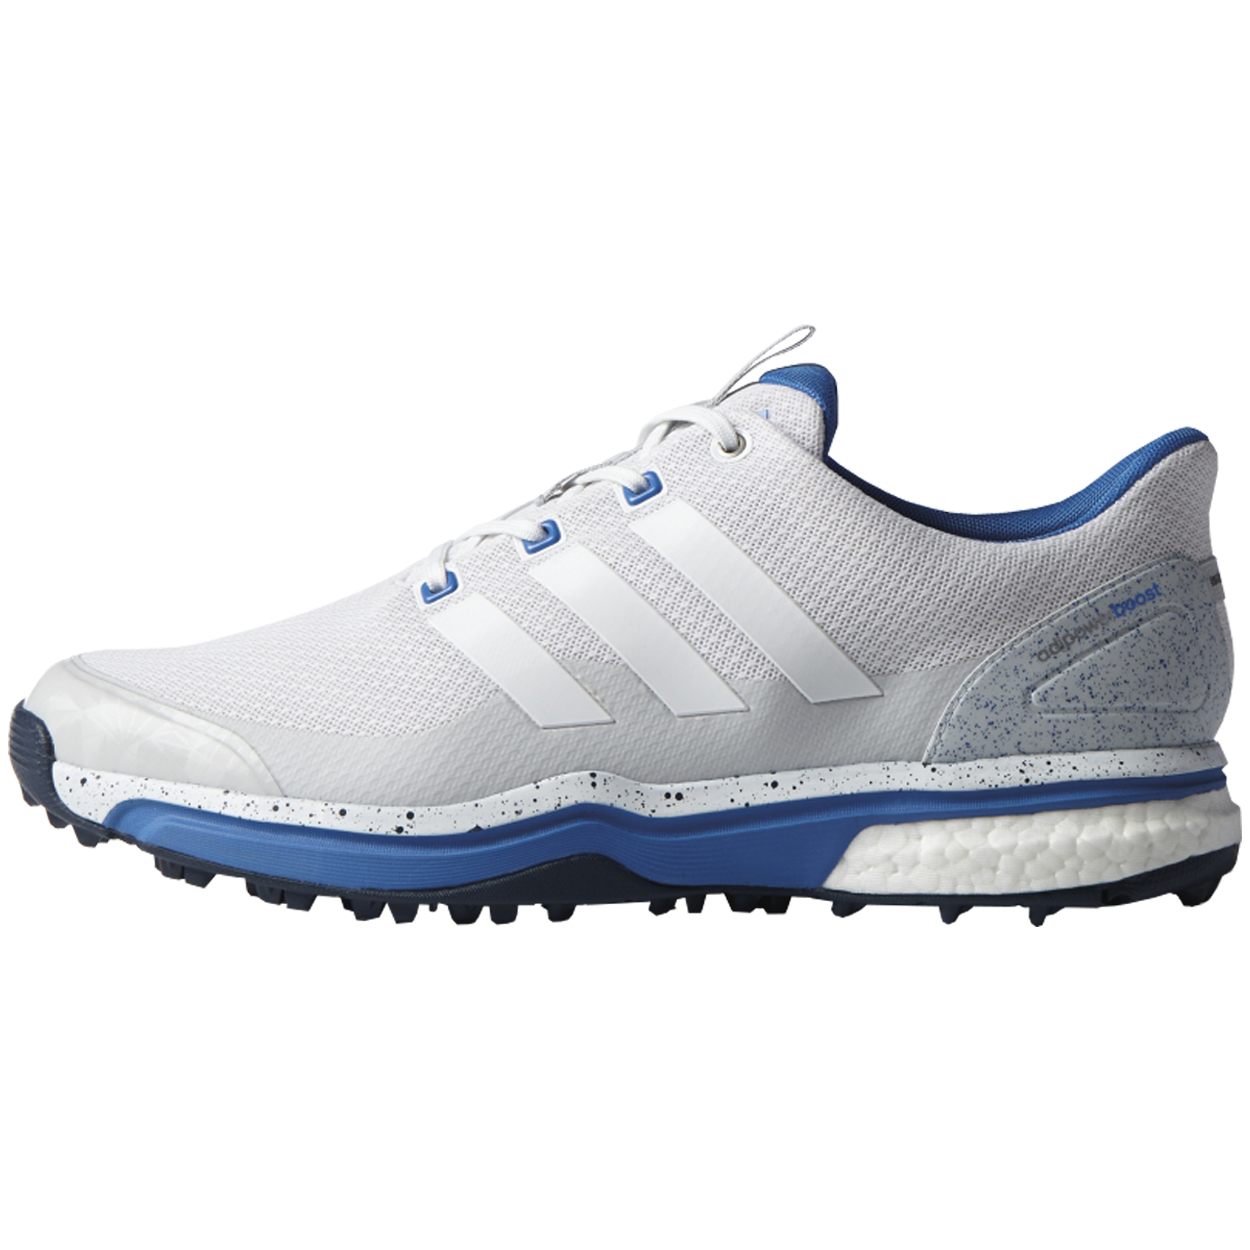 Adidas Walking Golf Shoes